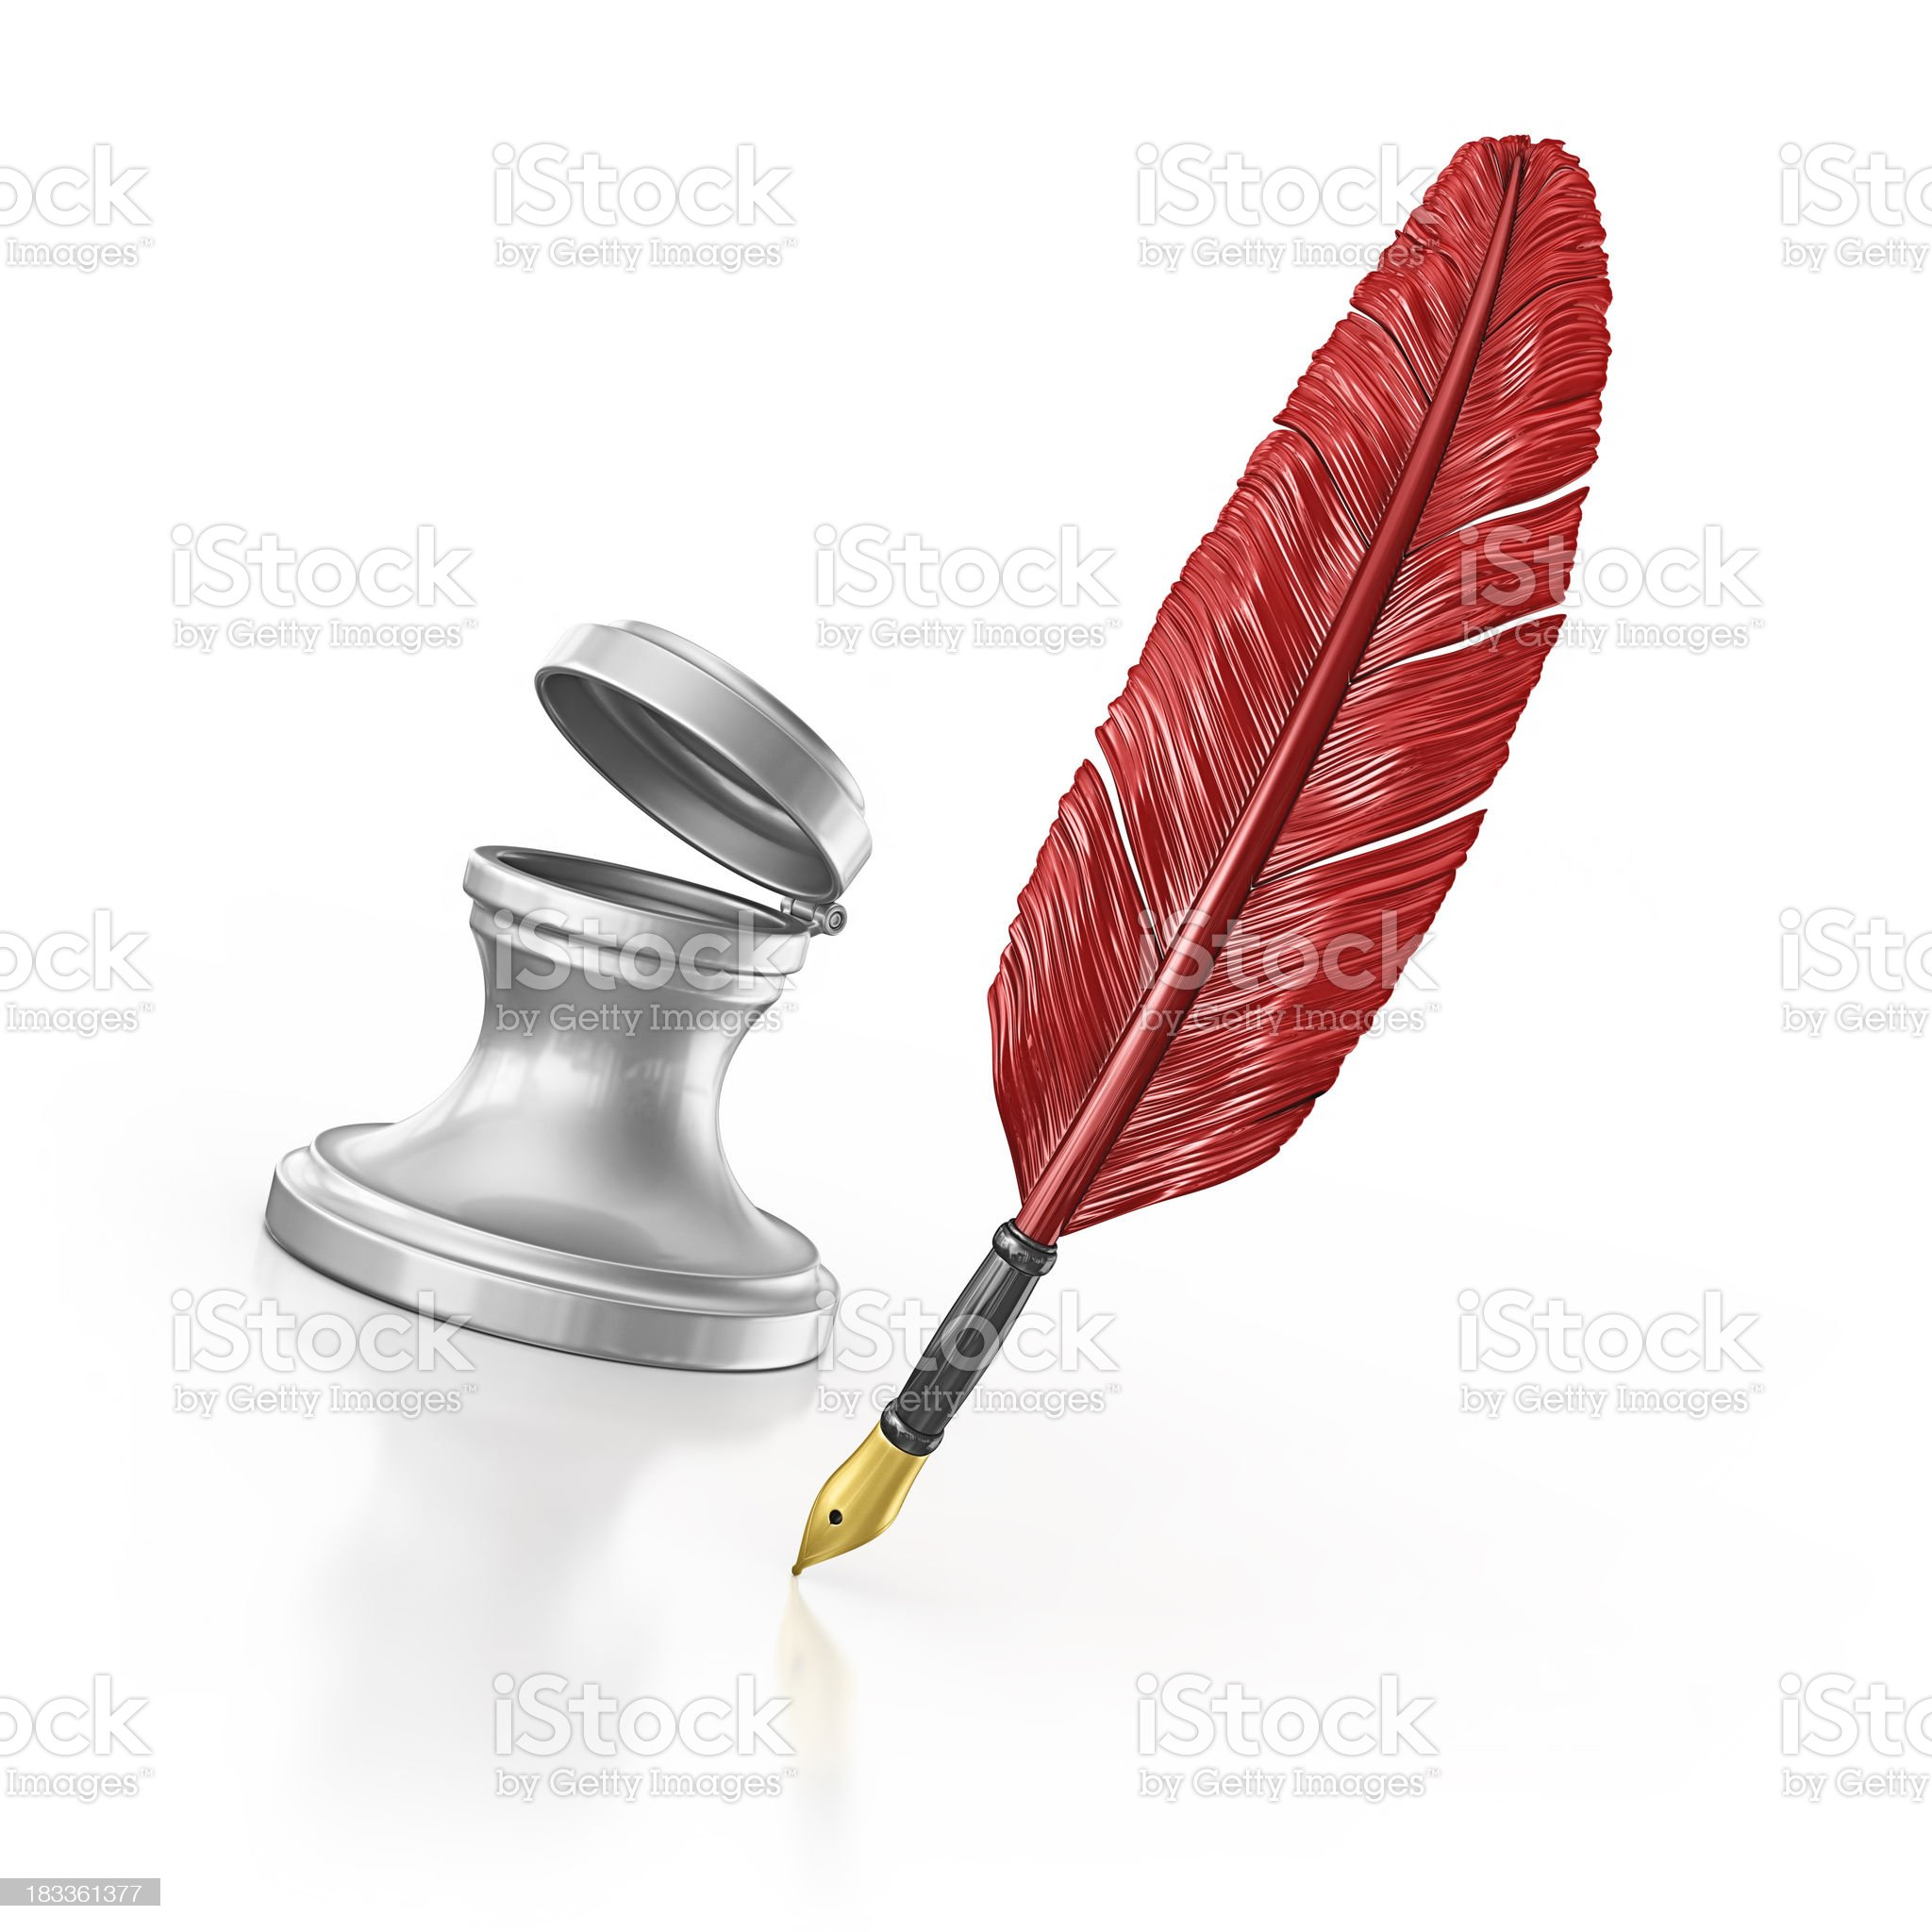 ink well and quill pen royalty-free stock photo